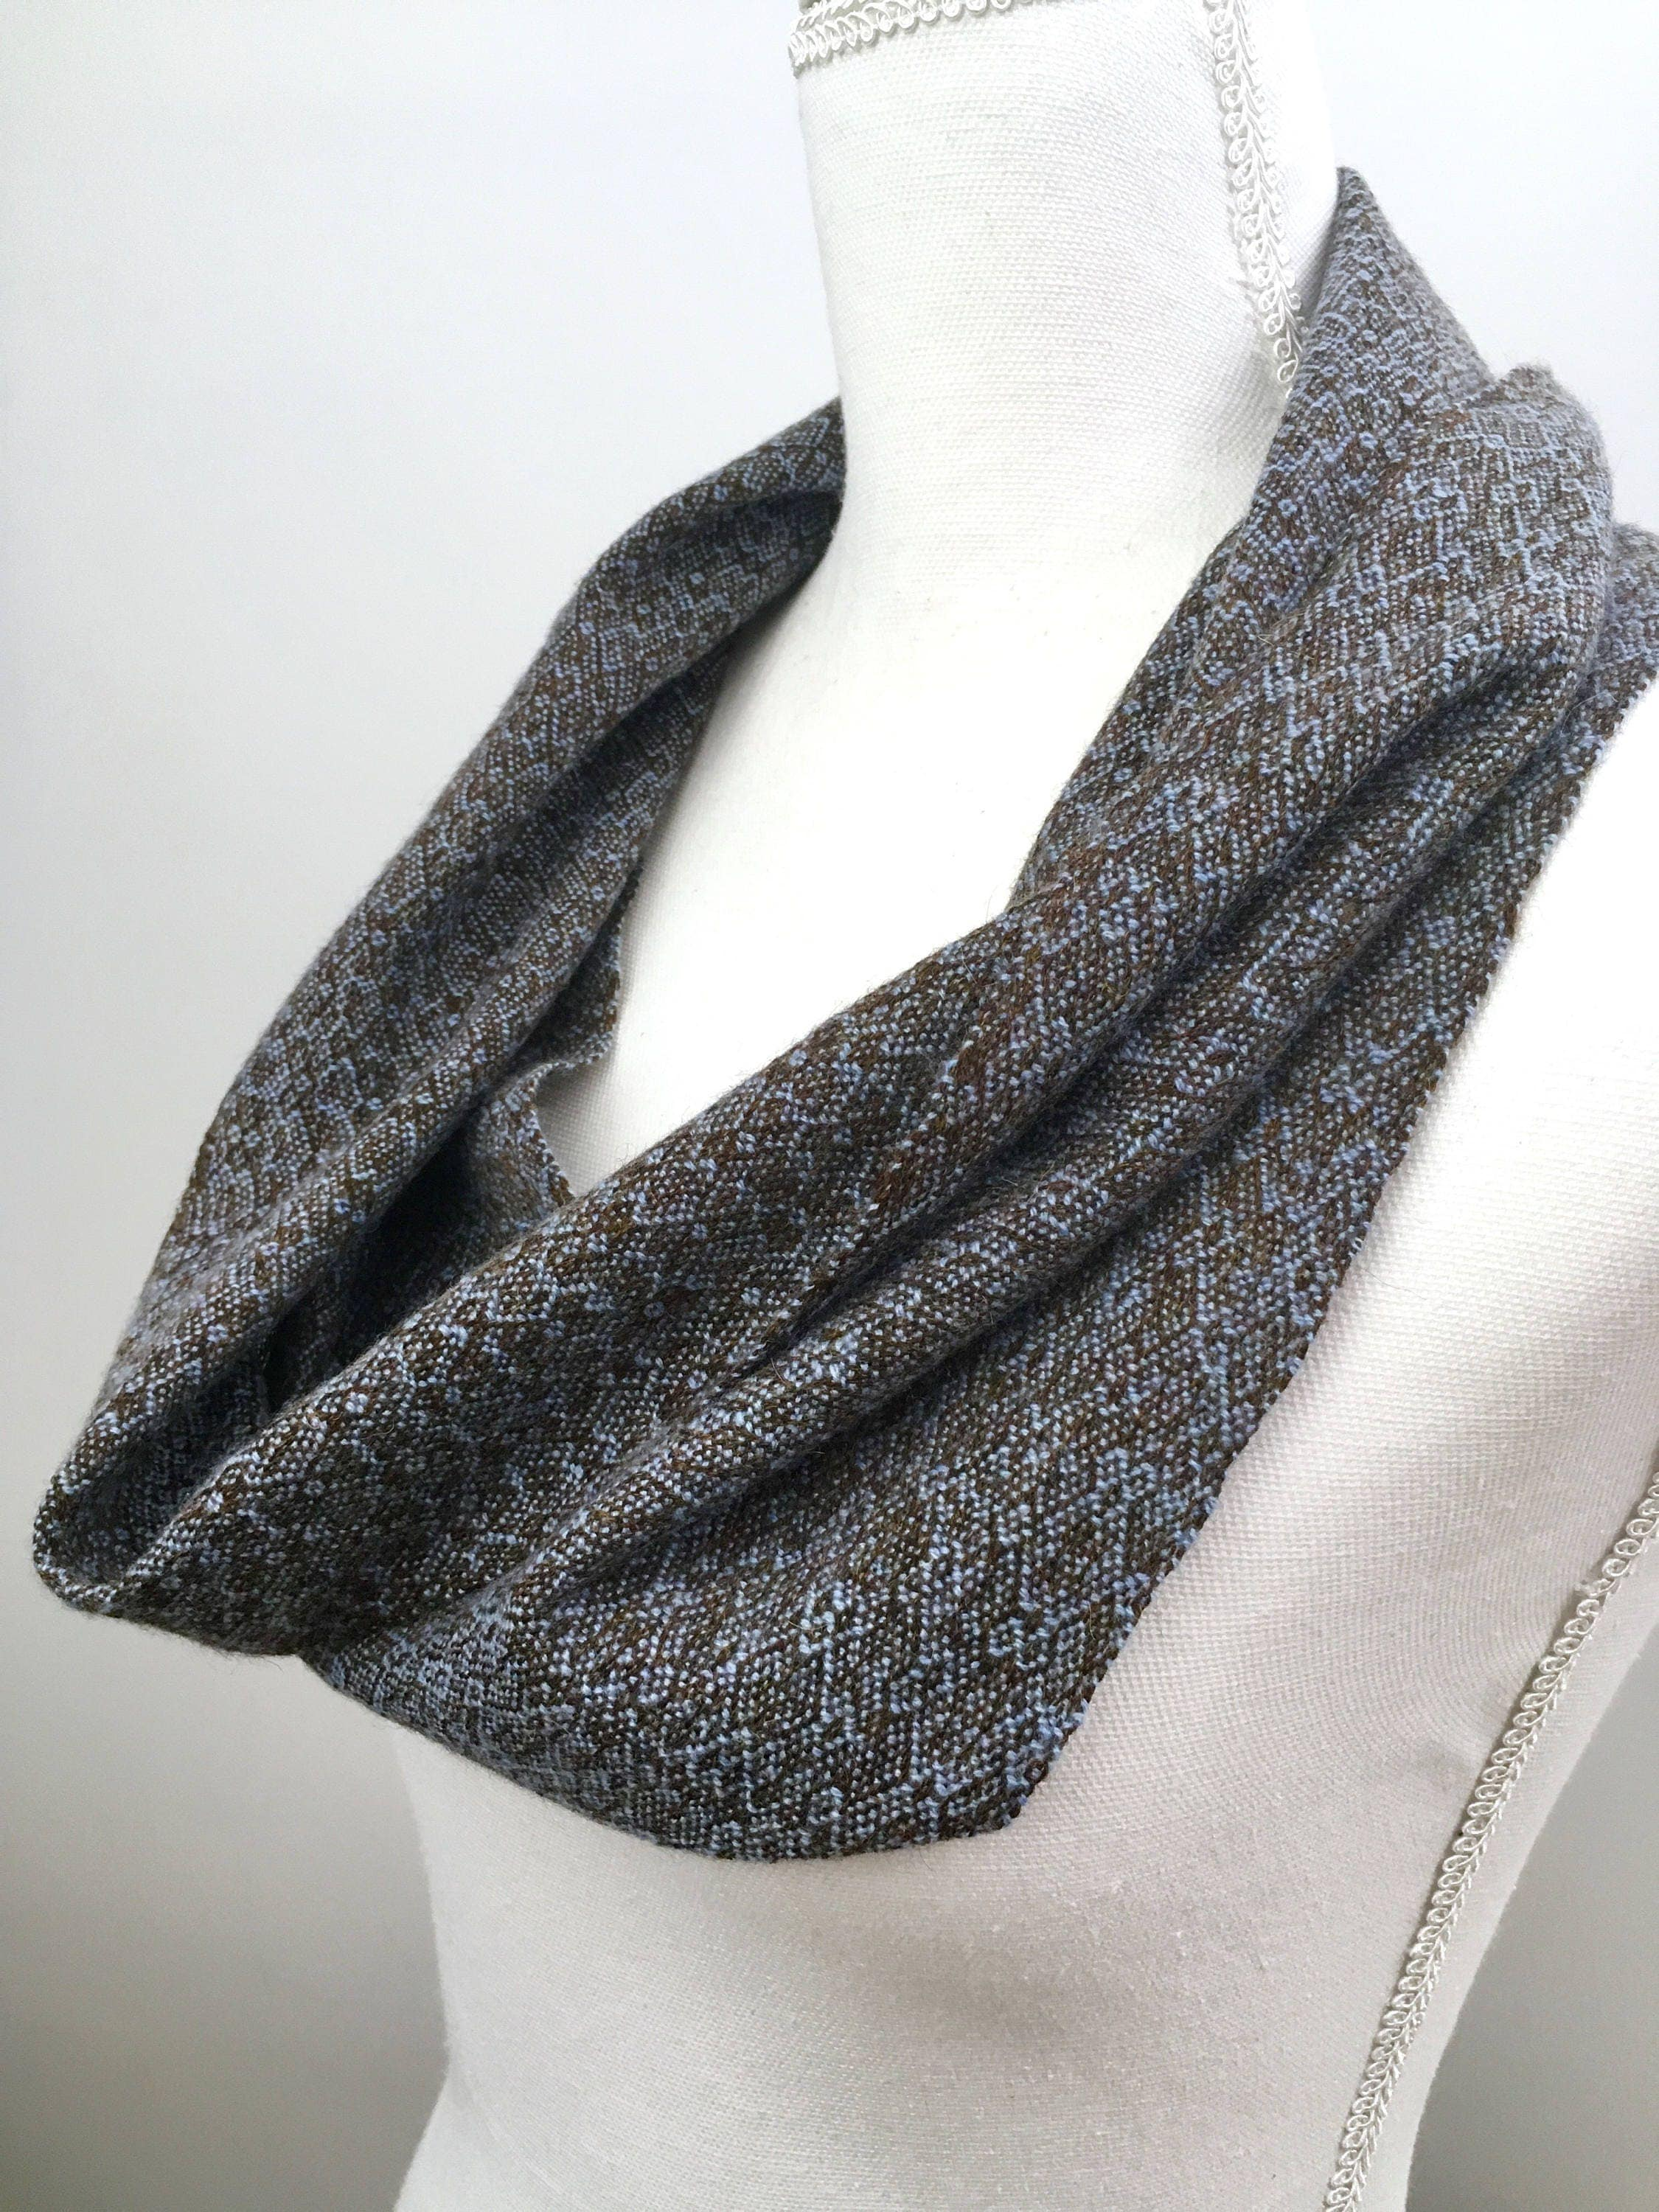 cashmere faves girls edition were re we scarf the now cozy jcr into fall what infinity right